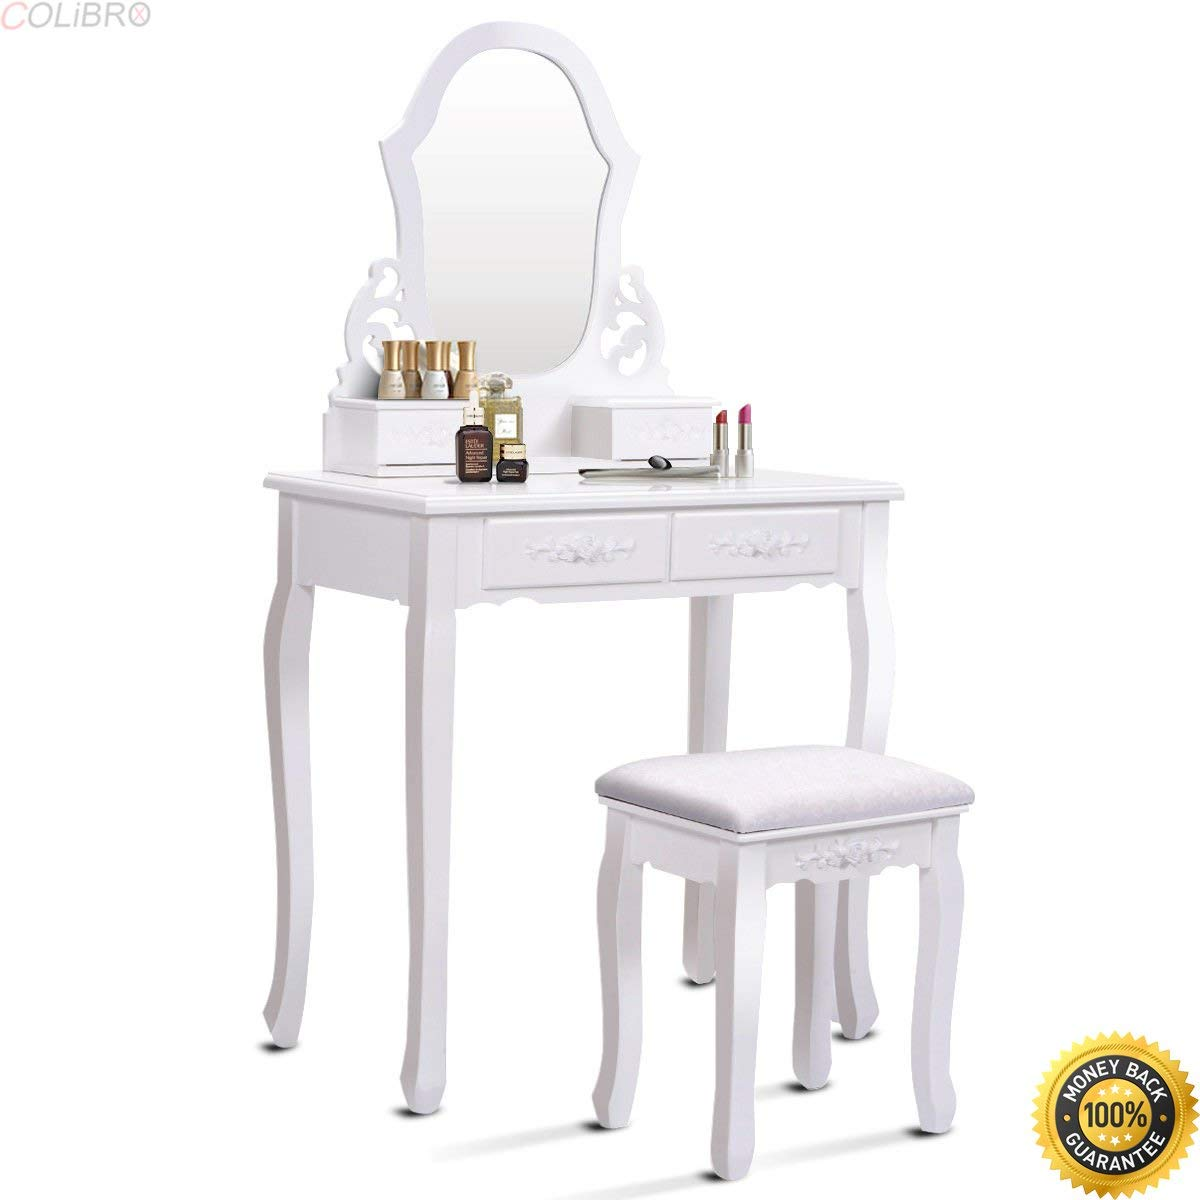 Get Quotations Colibrox White Vanity Jewelry Wooden Makeup Dressing Table Set W Stool Mirror